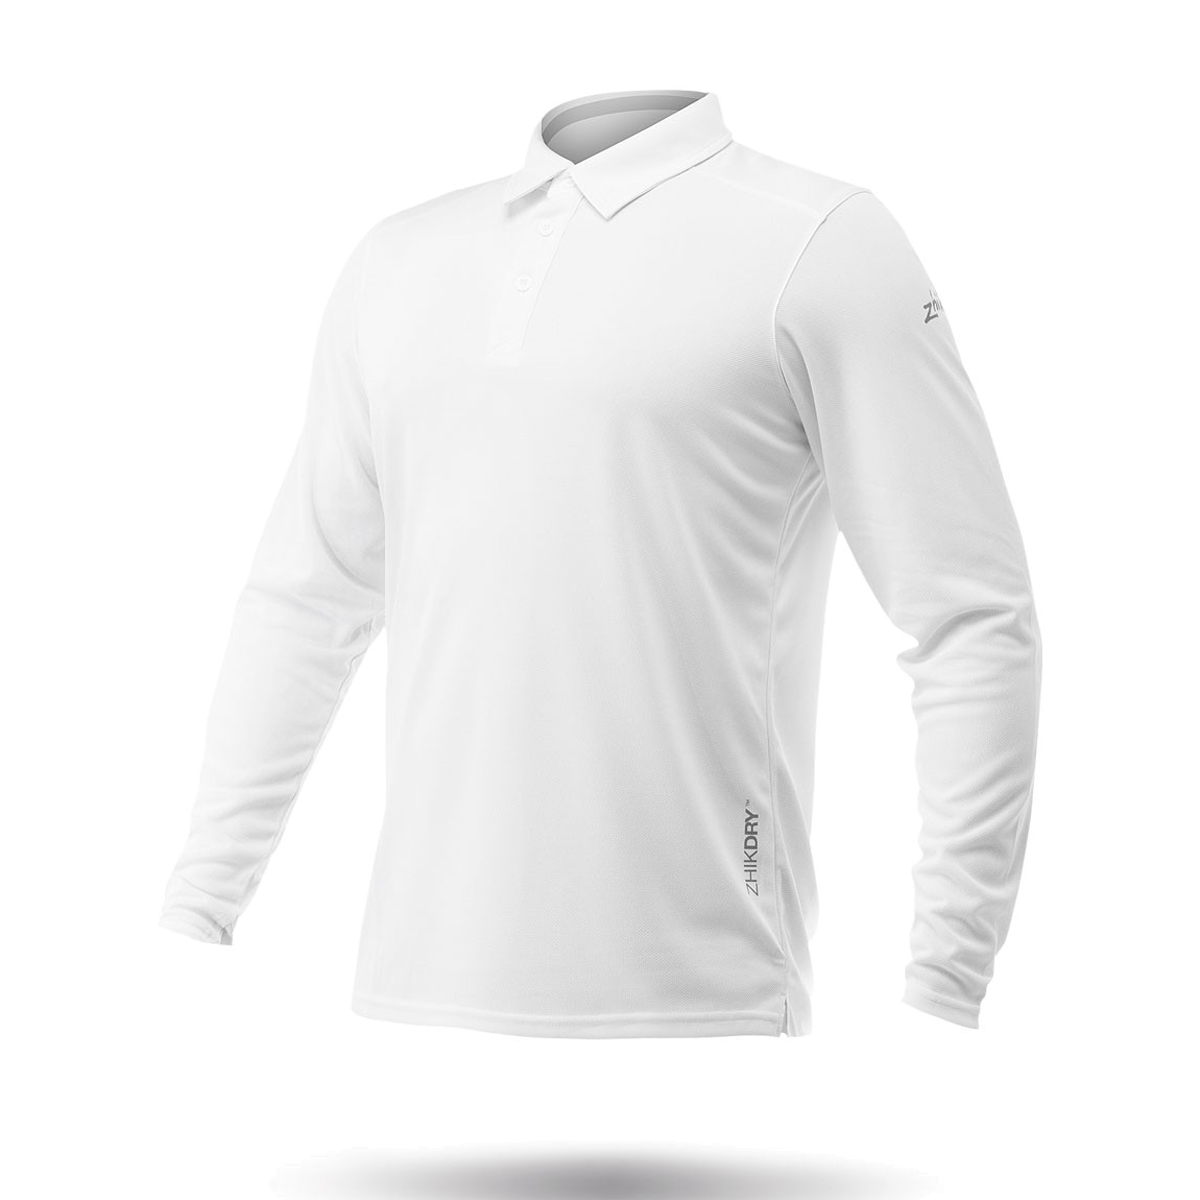 766363b74 Zhik Long Sleeve ZhikDry LT Sailing Polo 2019 - White